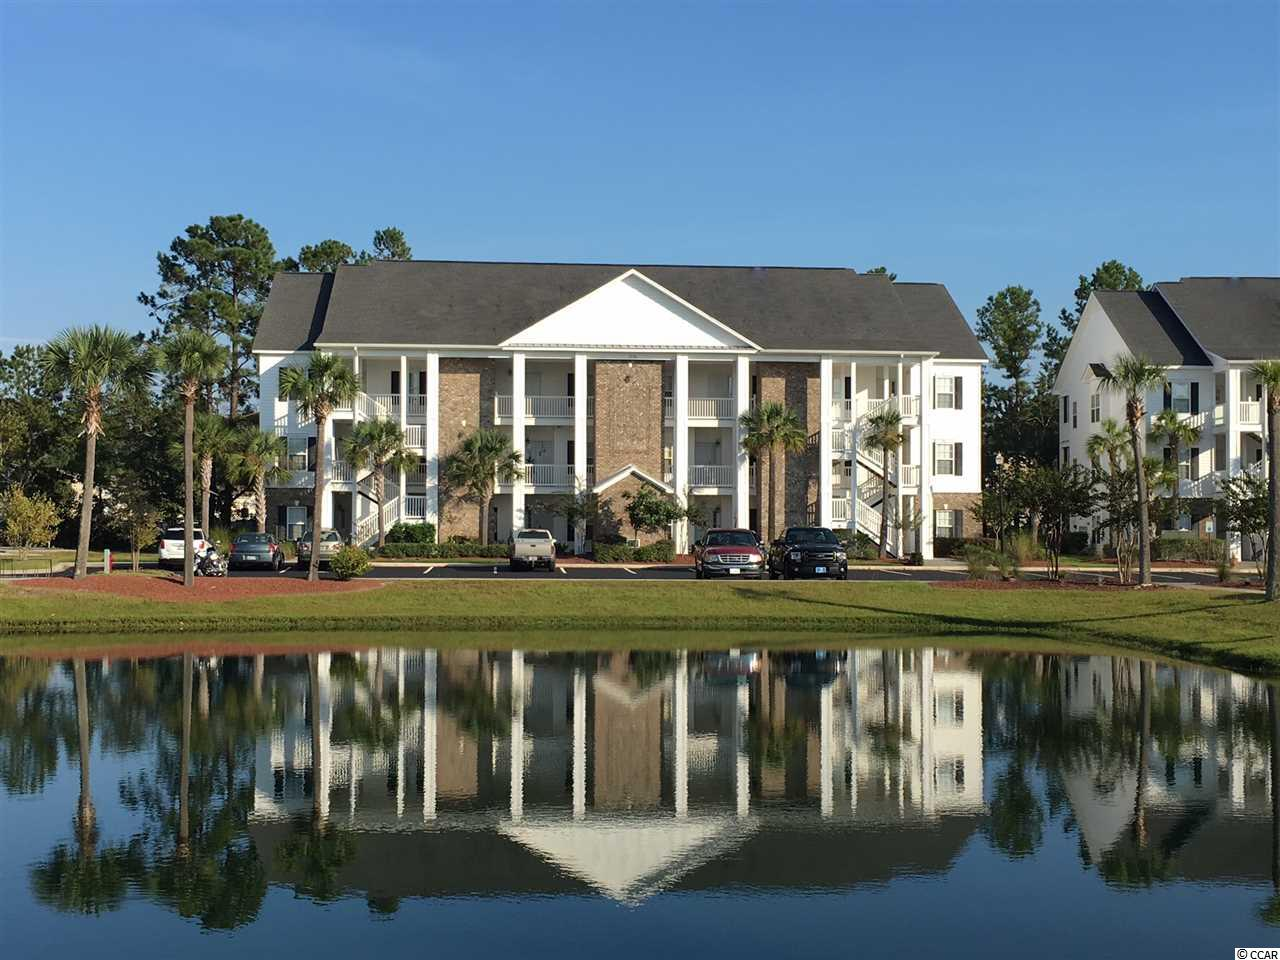 This gorgeous  2BR, 2BA villa has wonderful private tree lined views, so enjoying your morning coffee on your screened in porch just got even more relaxing. There is still time to come help design your home by choosing color options for your flooring, granite and cabinet options. Other amazing features of this home include 9ft ceilings, granite countertops in kitchen and matching granite in all bathrooms, screened in porch, outside storage unit, walk in closets and more. This community will be totally gated once the last building is completed, low HOA fees and only 2 miles to the beach. This property is centrally located on the South end to everything. This is a perfect primary home, second home or beach retreat. The units are all on one level and the care free living provided by this community gives you the full essence of coastal living. This building is currently under construction (pictures are of our current model and not the actual unit for sale) and has an estimated completion date of June 2020 (that can change). We do have an on site model available to see everyday; the model hours are Monday - Friday 10am-4pm, Saturday12 pm-4 pm and Sunday 12pm-3pm. Stop by and tour these gorgeous homes for yourself. All Sq. Footage is approximate and not guaranteed, buyer is responsible for verification.